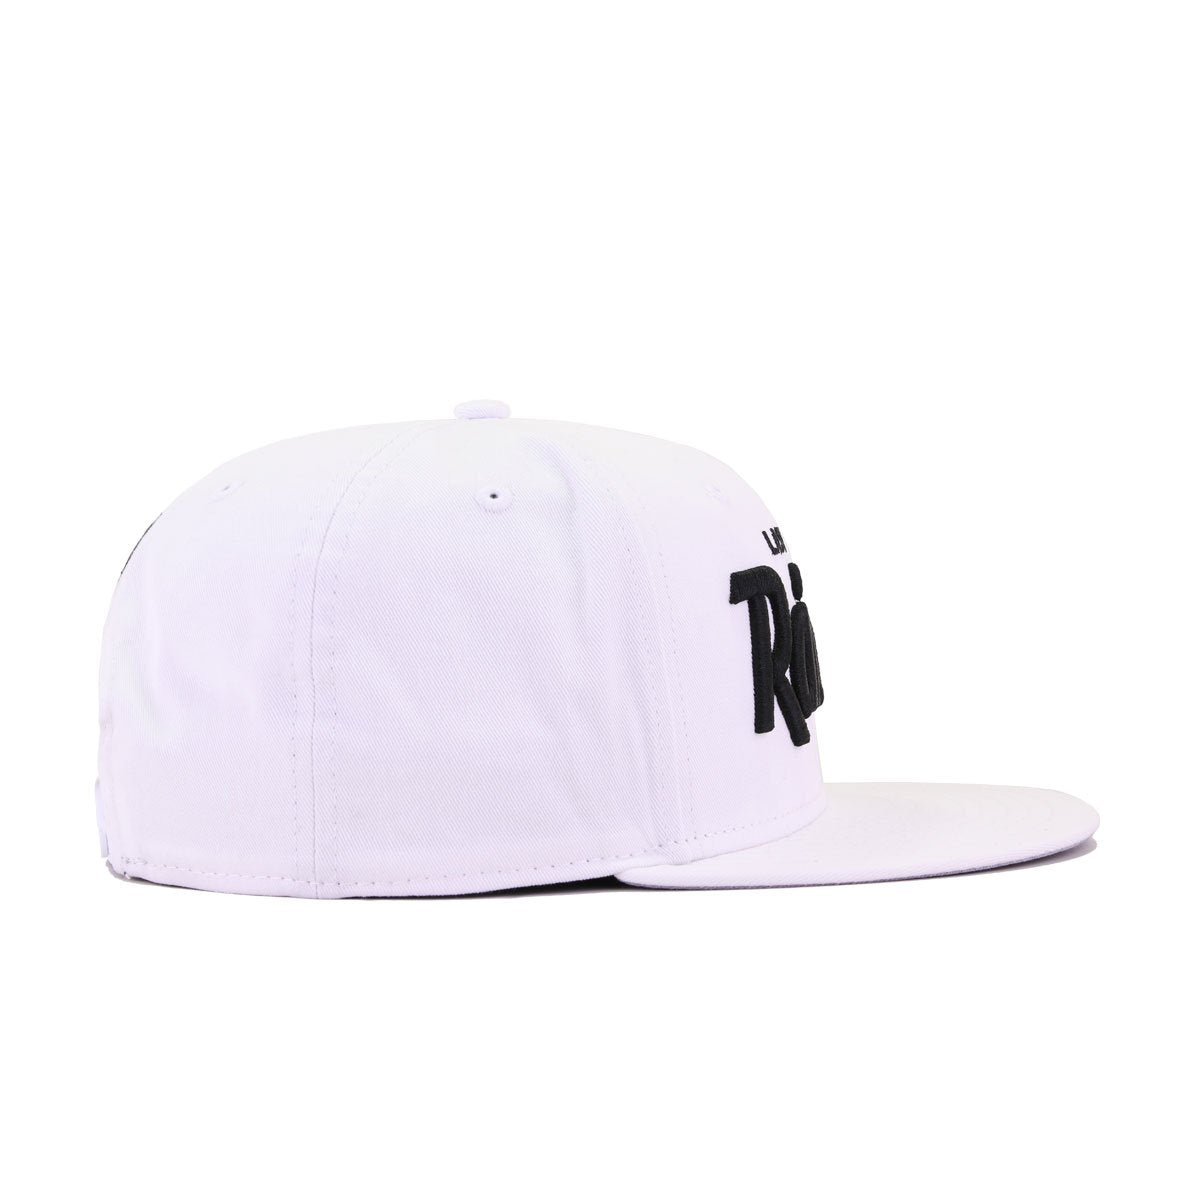 Las Vegas Raiders White Script New Era 9Fifty Snapback